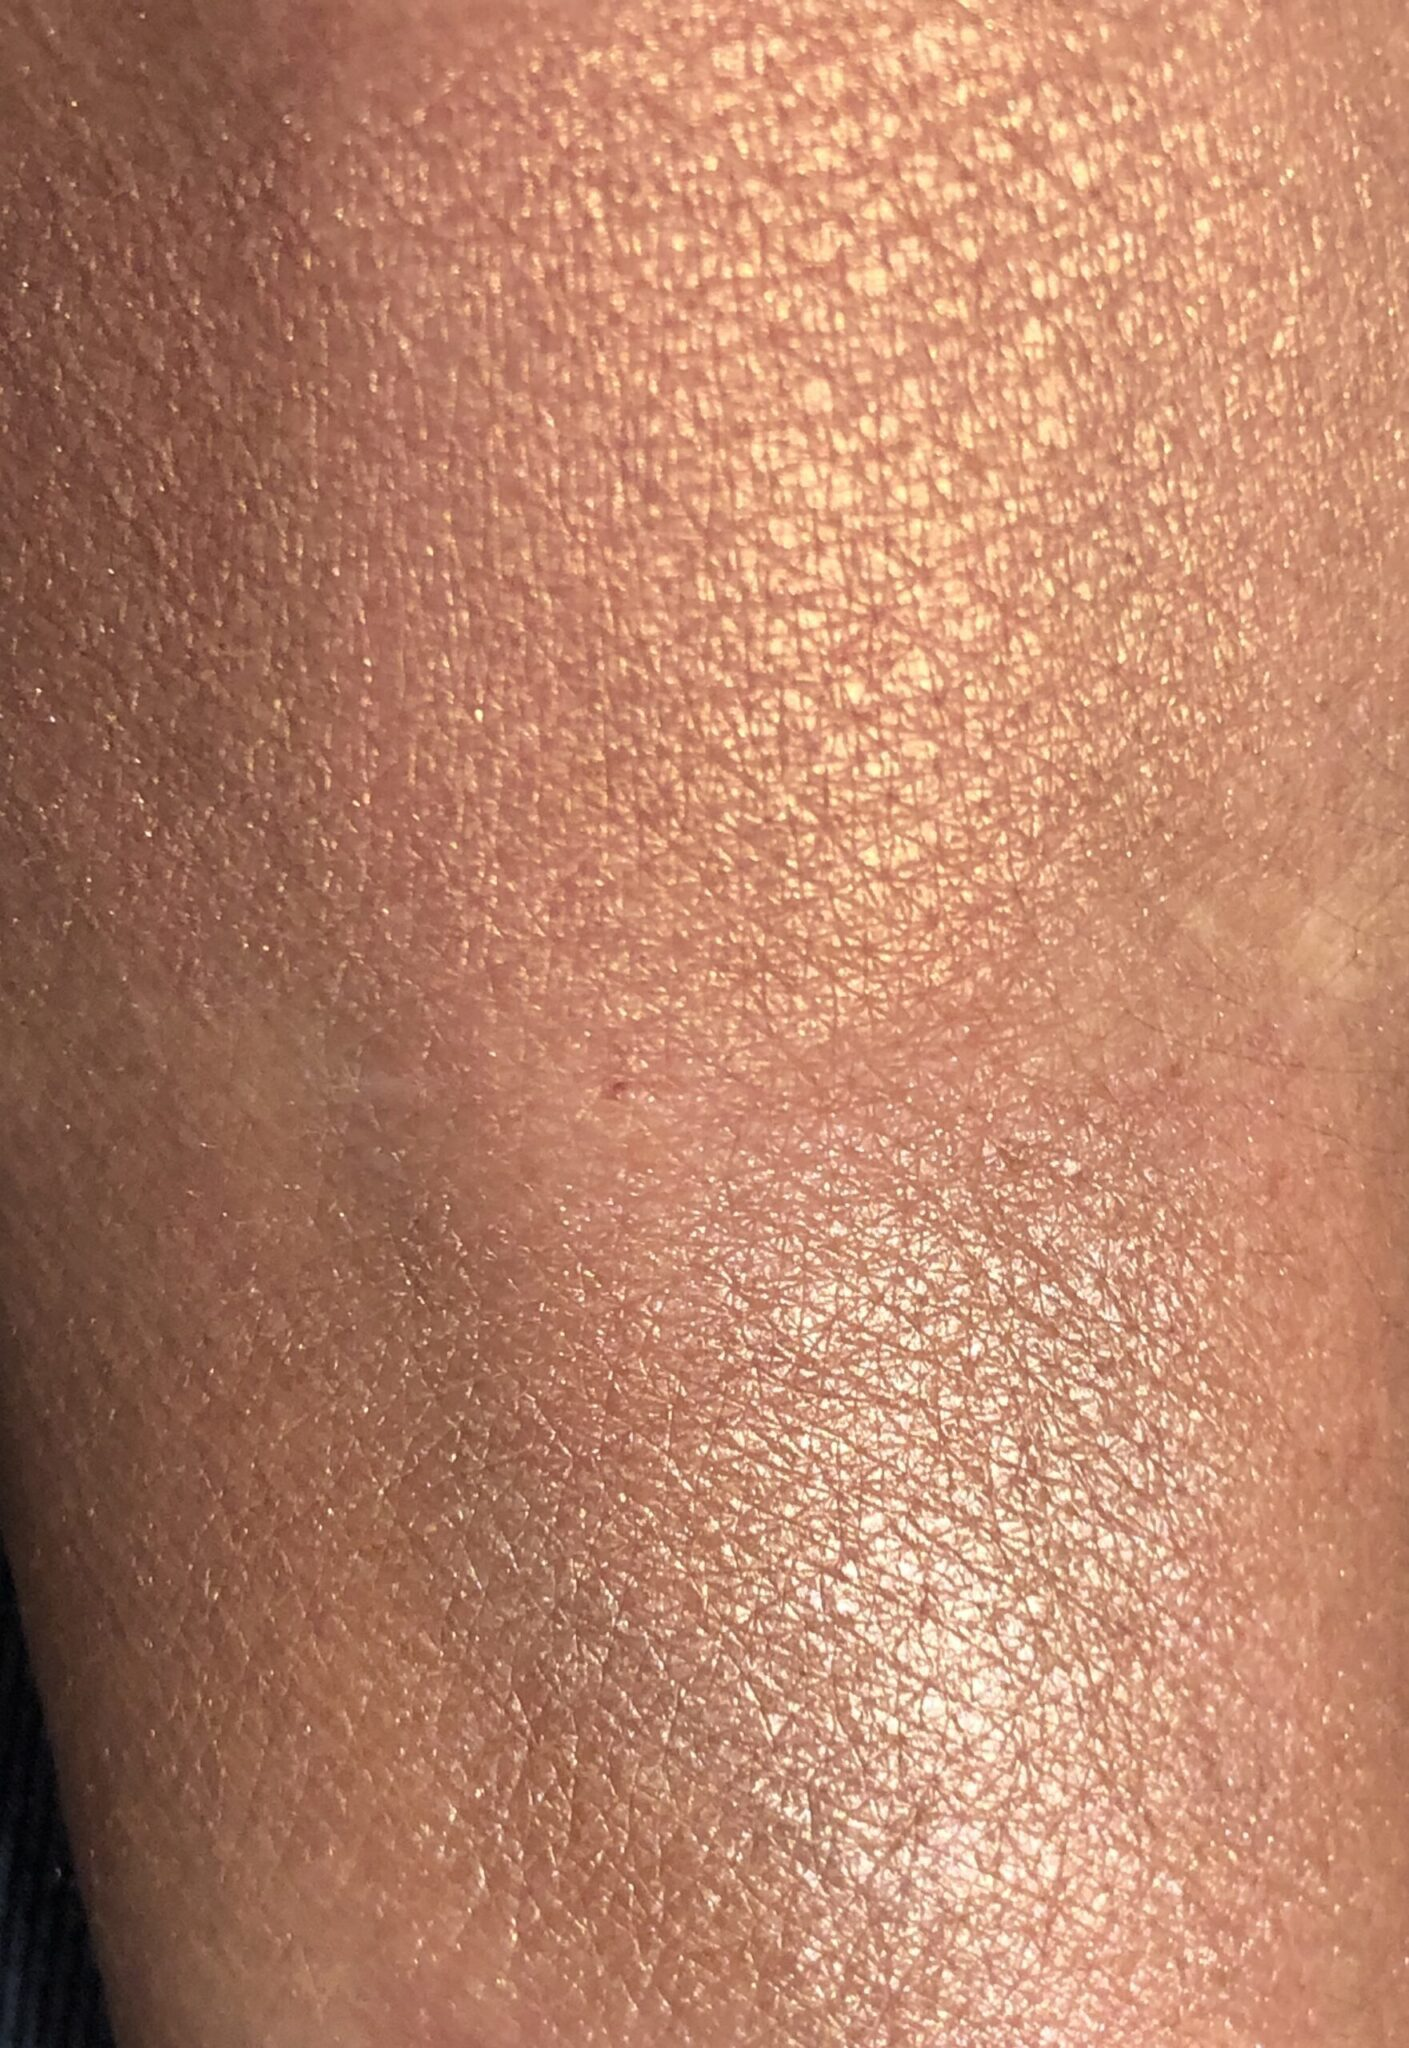 DIORSKIN NUDE LUMINIZER SHIMMERING GLOW POWDER SWATCHES TOP IS PEACH DUNE, BOTTOM IS ROSE GLOW